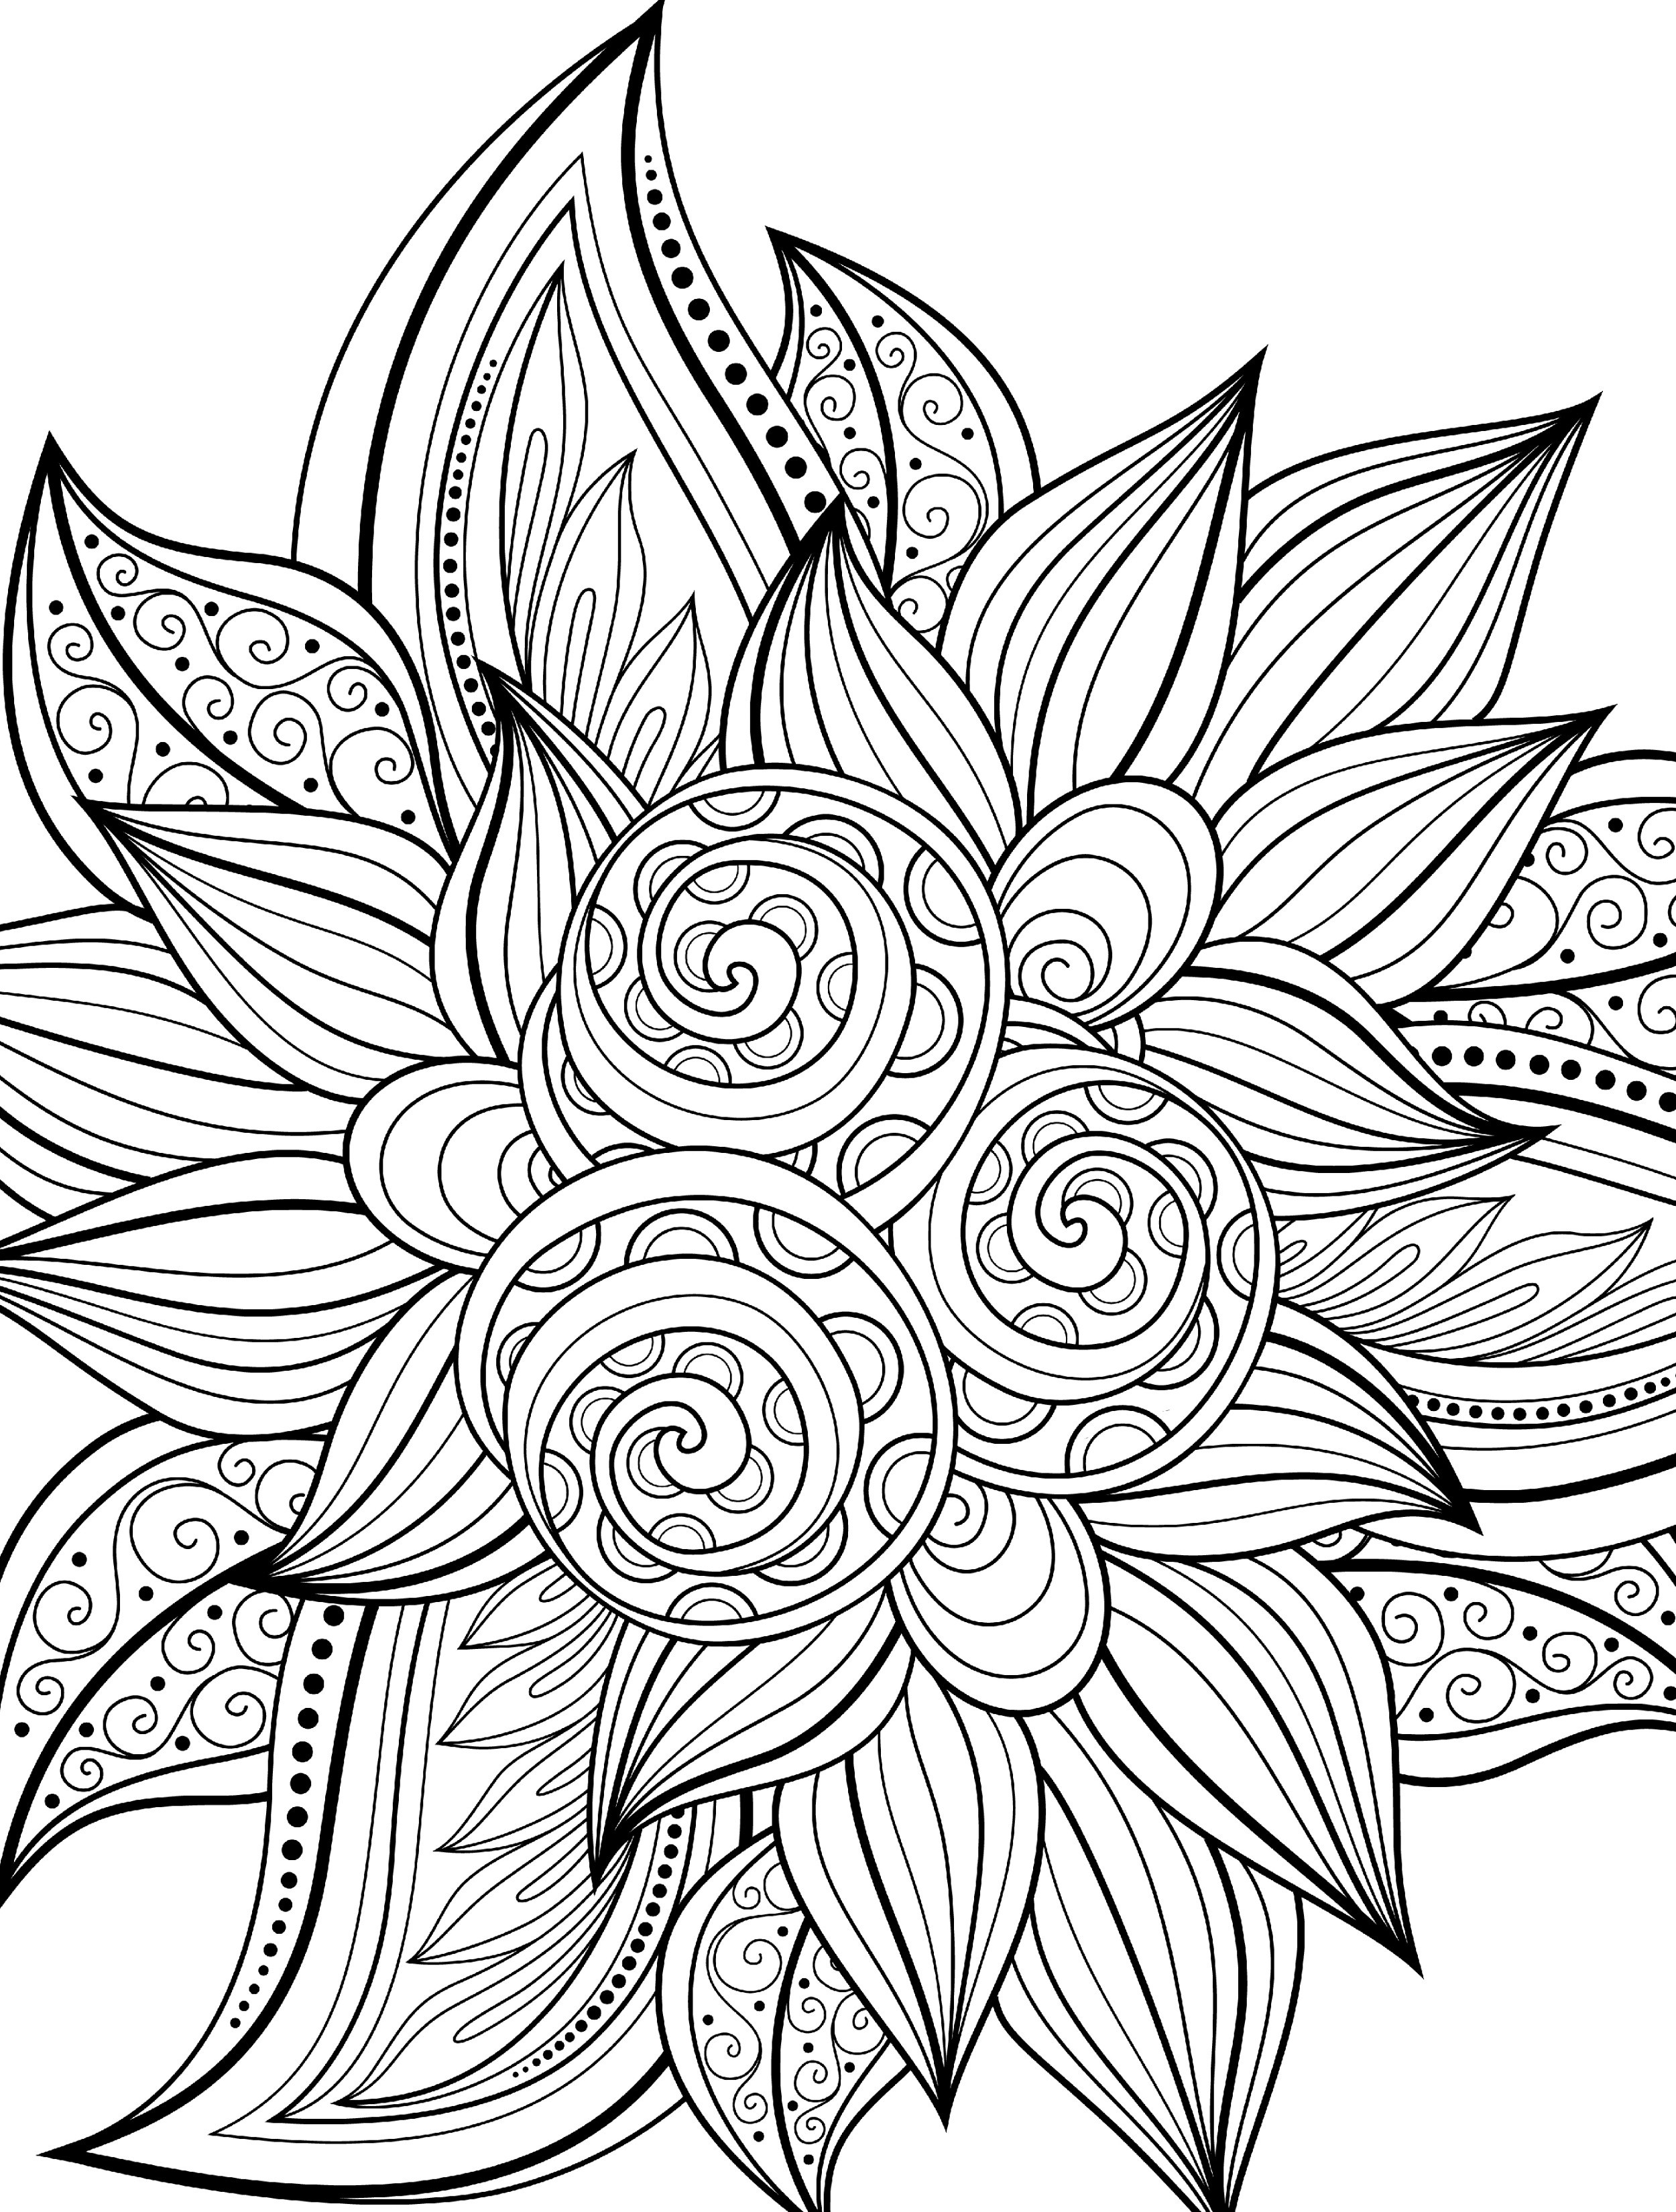 2500x3300 Amazing Coloring Pages Rallytv Amazing Coloring Pages Coloring